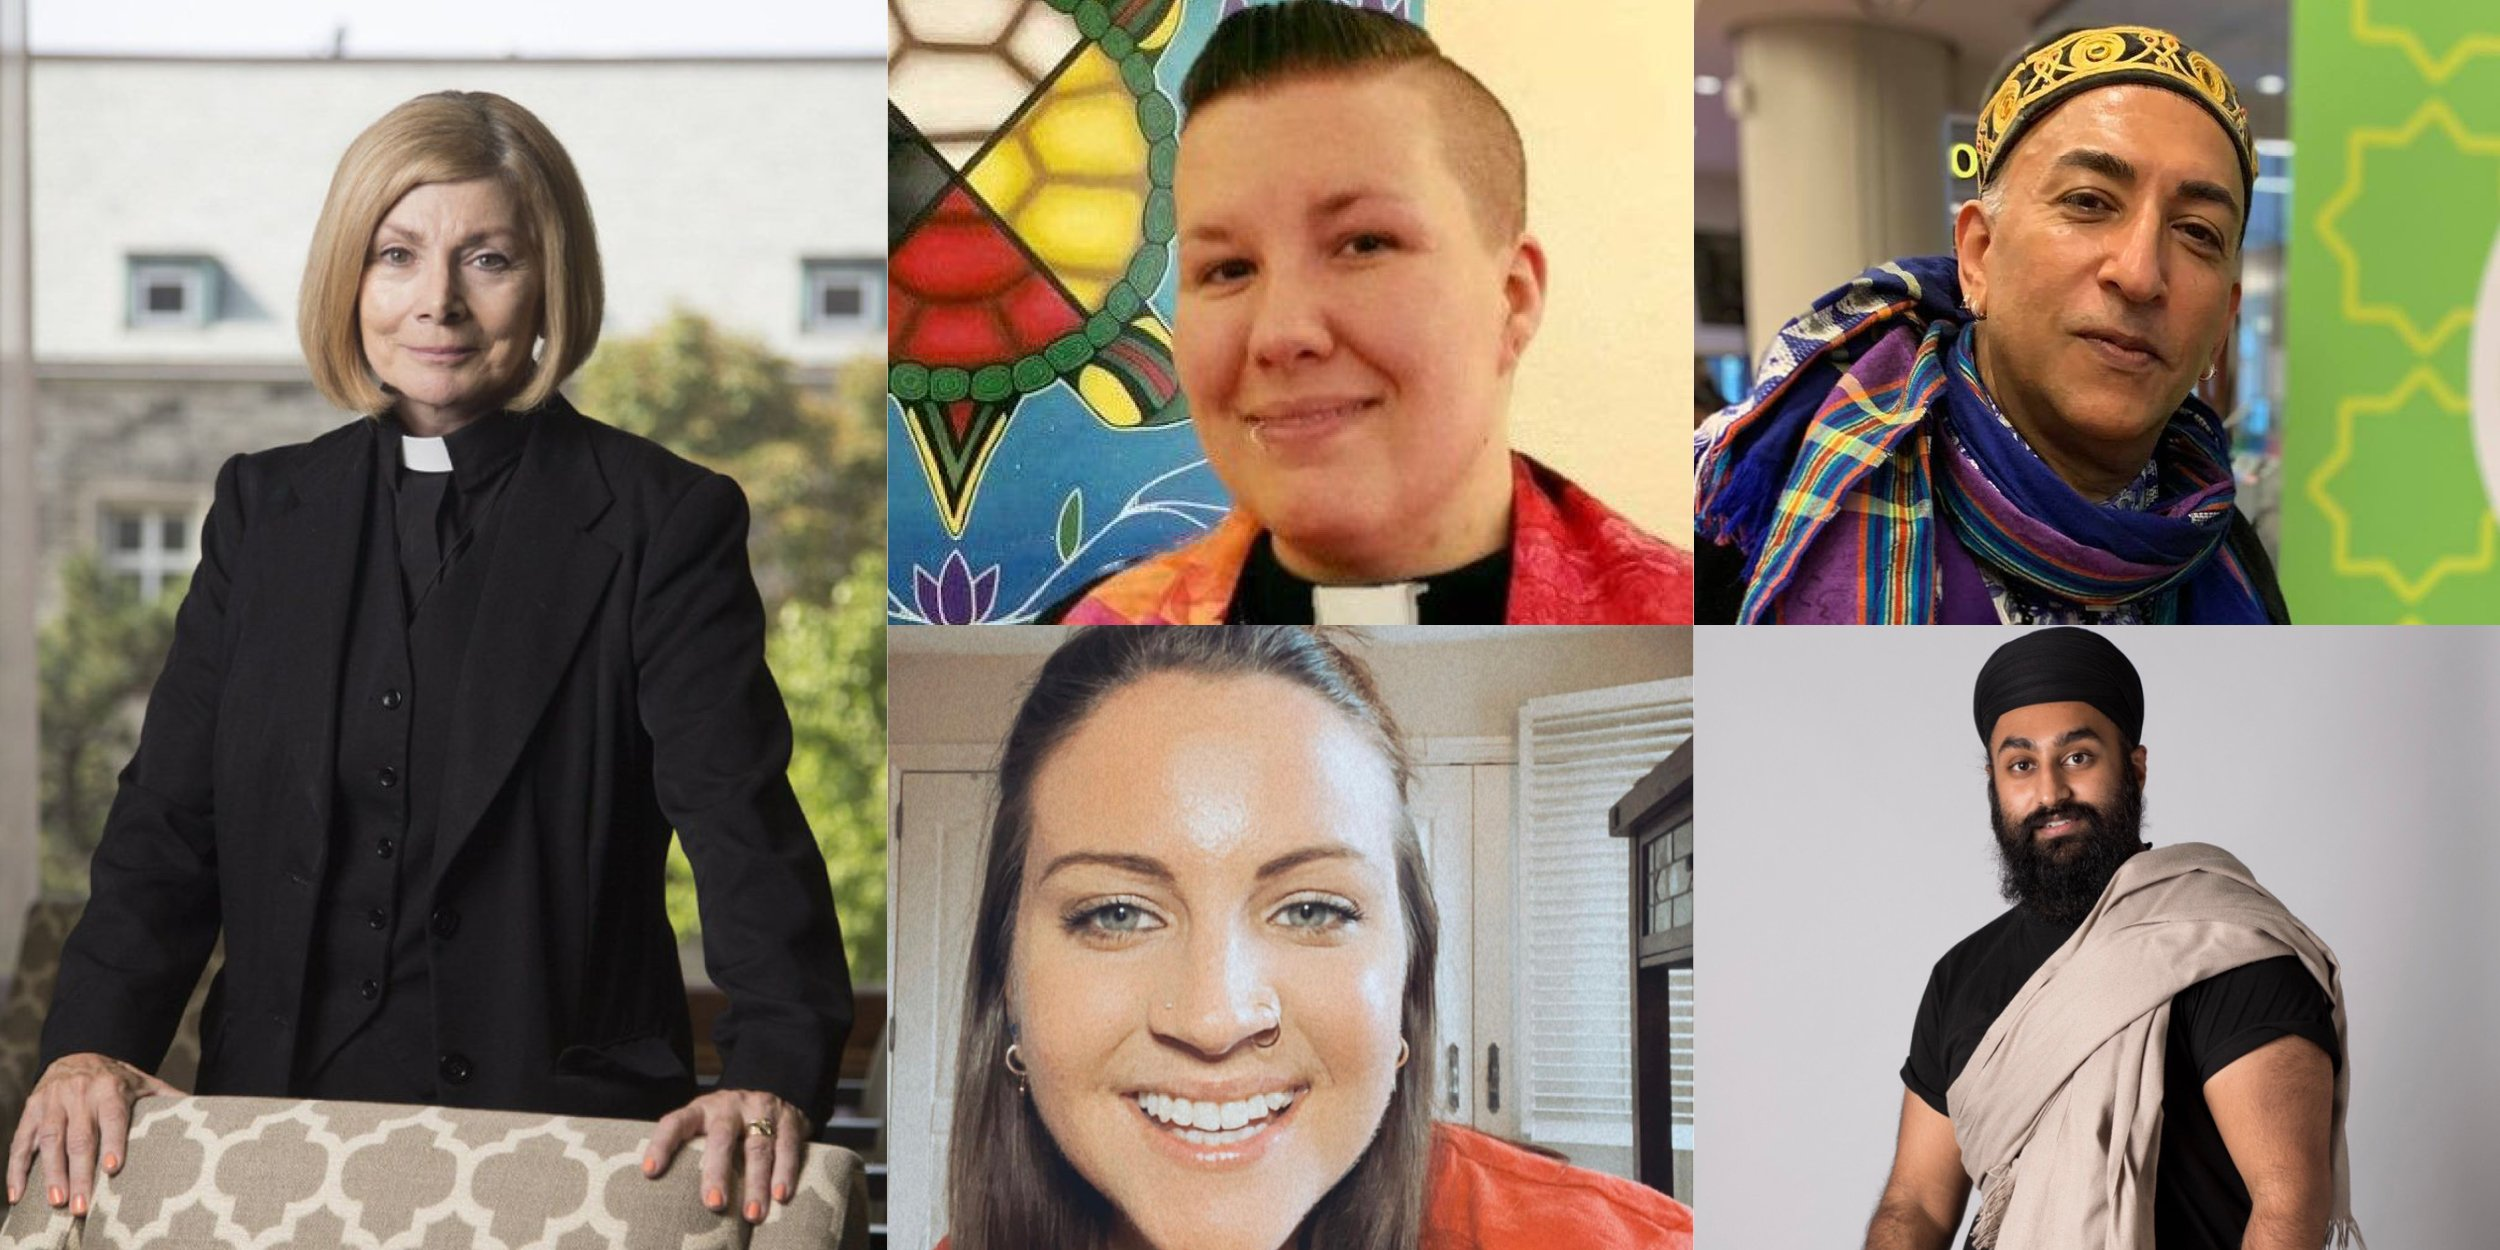 On the Left Cheri DiNovo, Middle top, Rev. Evan Swance-Smith (Urban Native Ministry) Top Right, El-Farouk Khaki (Salaam: Queer Muslim Community), Middle Bottom, Jess Burke (CIJA), Bottom Right Sardar. Jodh Singh (founder of the Queer Sikh Network).